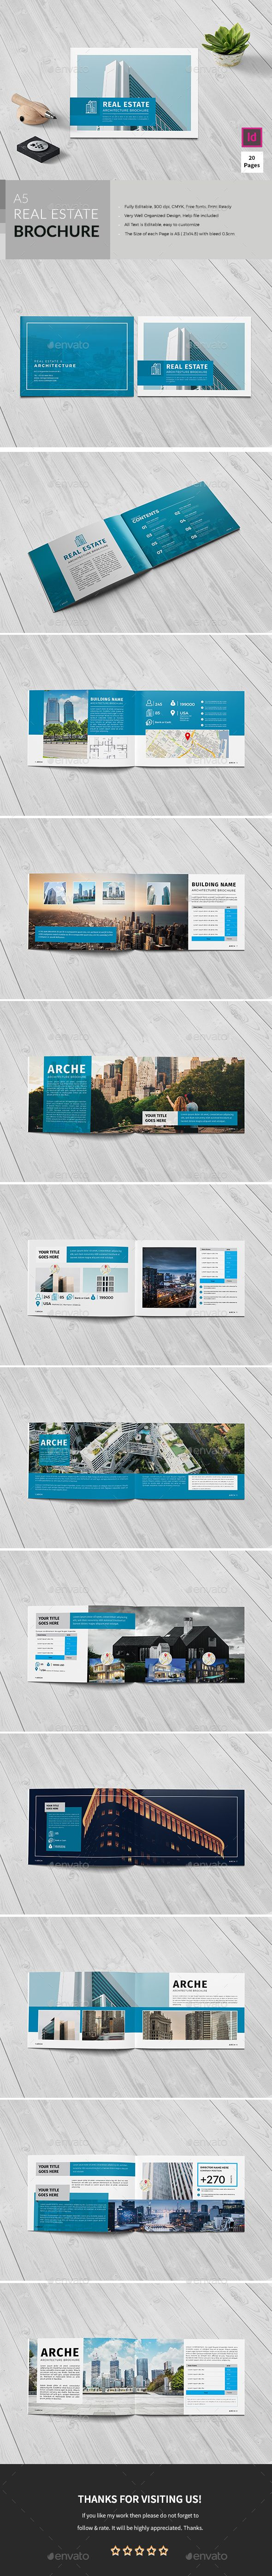 A5 Realestate/Architecture Brochure Easy to edit, you can change Blue accent color throughout the whole document at once, paragraph and character styles included, text and images placed on separate layers, text aligned to grid. It is a vertical design, available in A5 size (21×148) cm. It contains 24 pages... search tag: #A5 #Realestate / #Architecture Brochure - #Corporate #Brochures